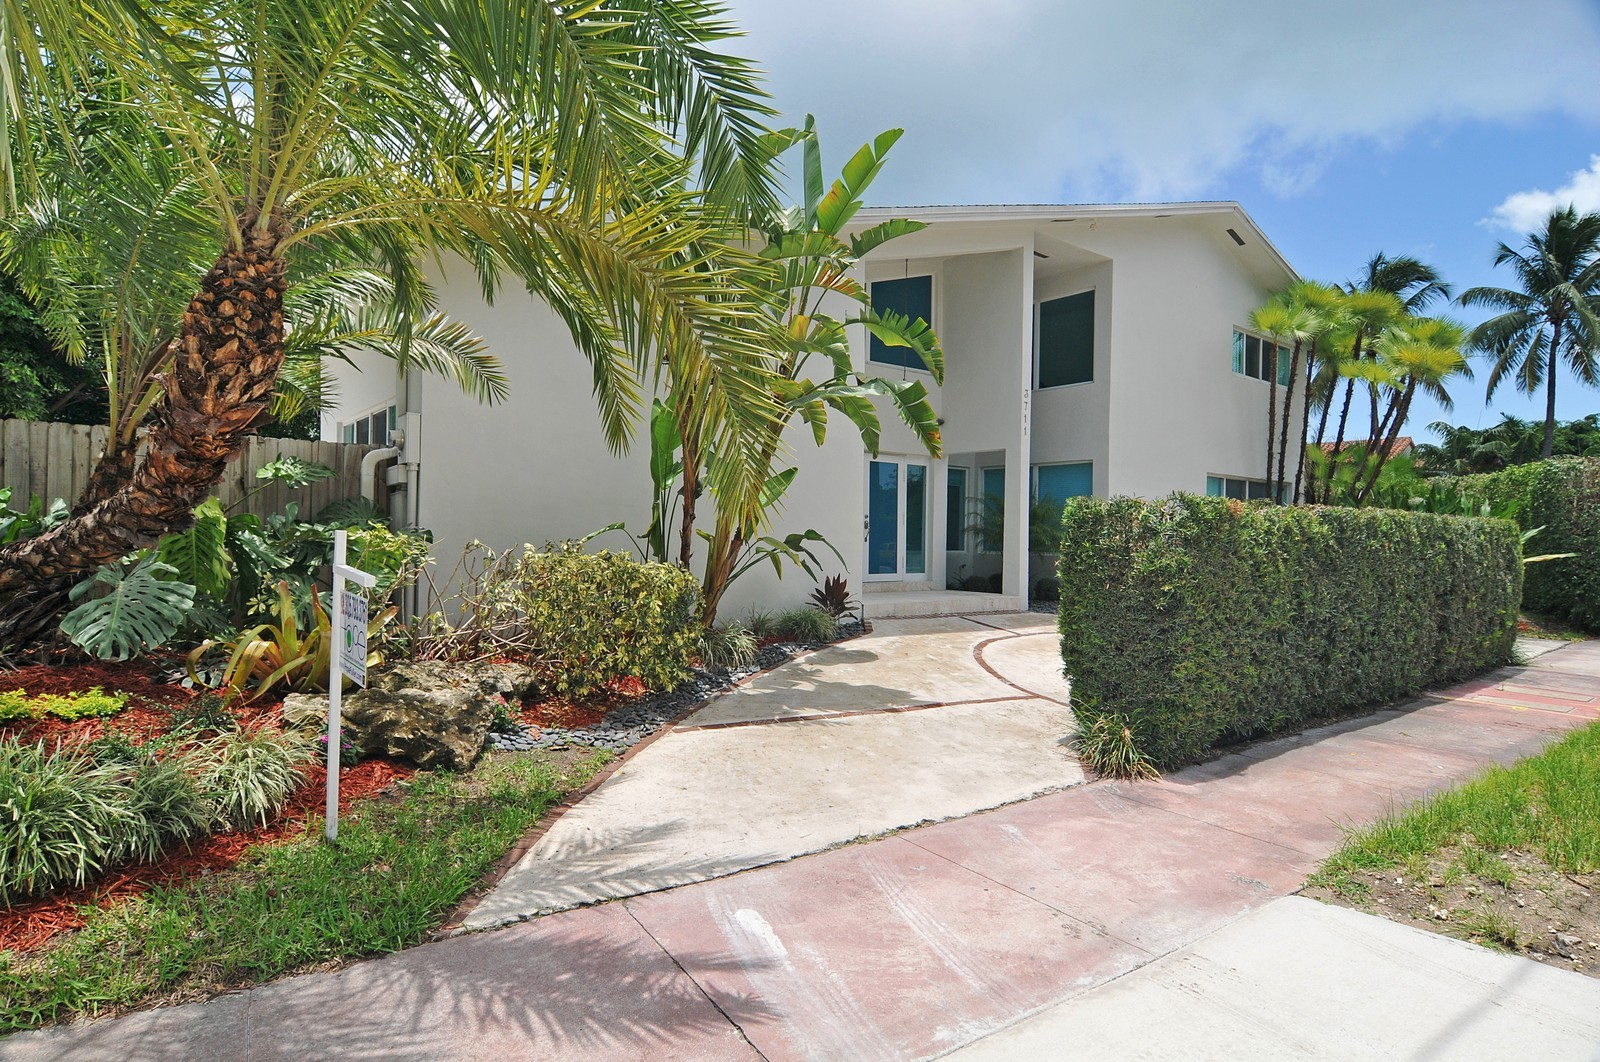 Real Estate Photography - 3711 Sheridan Ave, Miami Beach, FL, 33140 - Front View